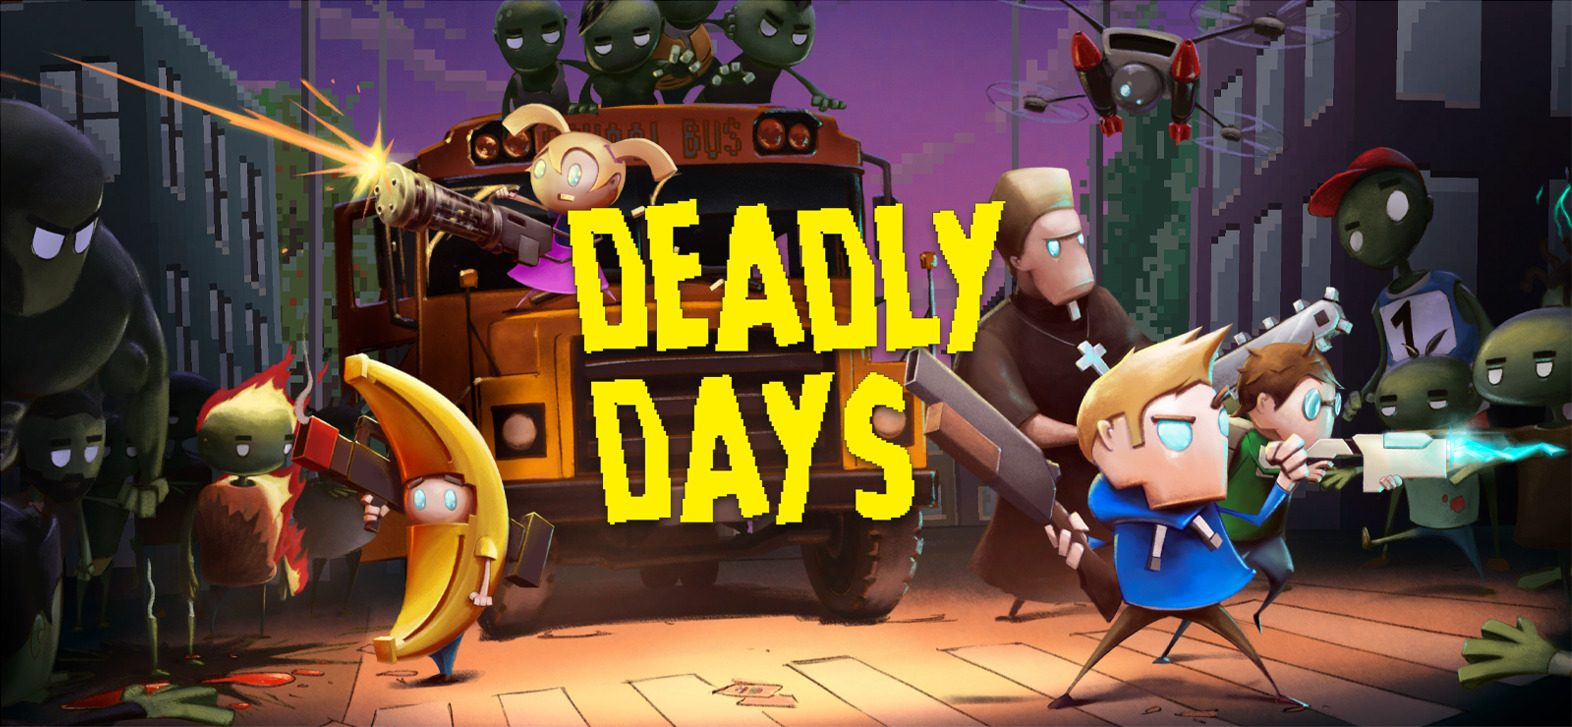 deadly-days-free-download-2715190